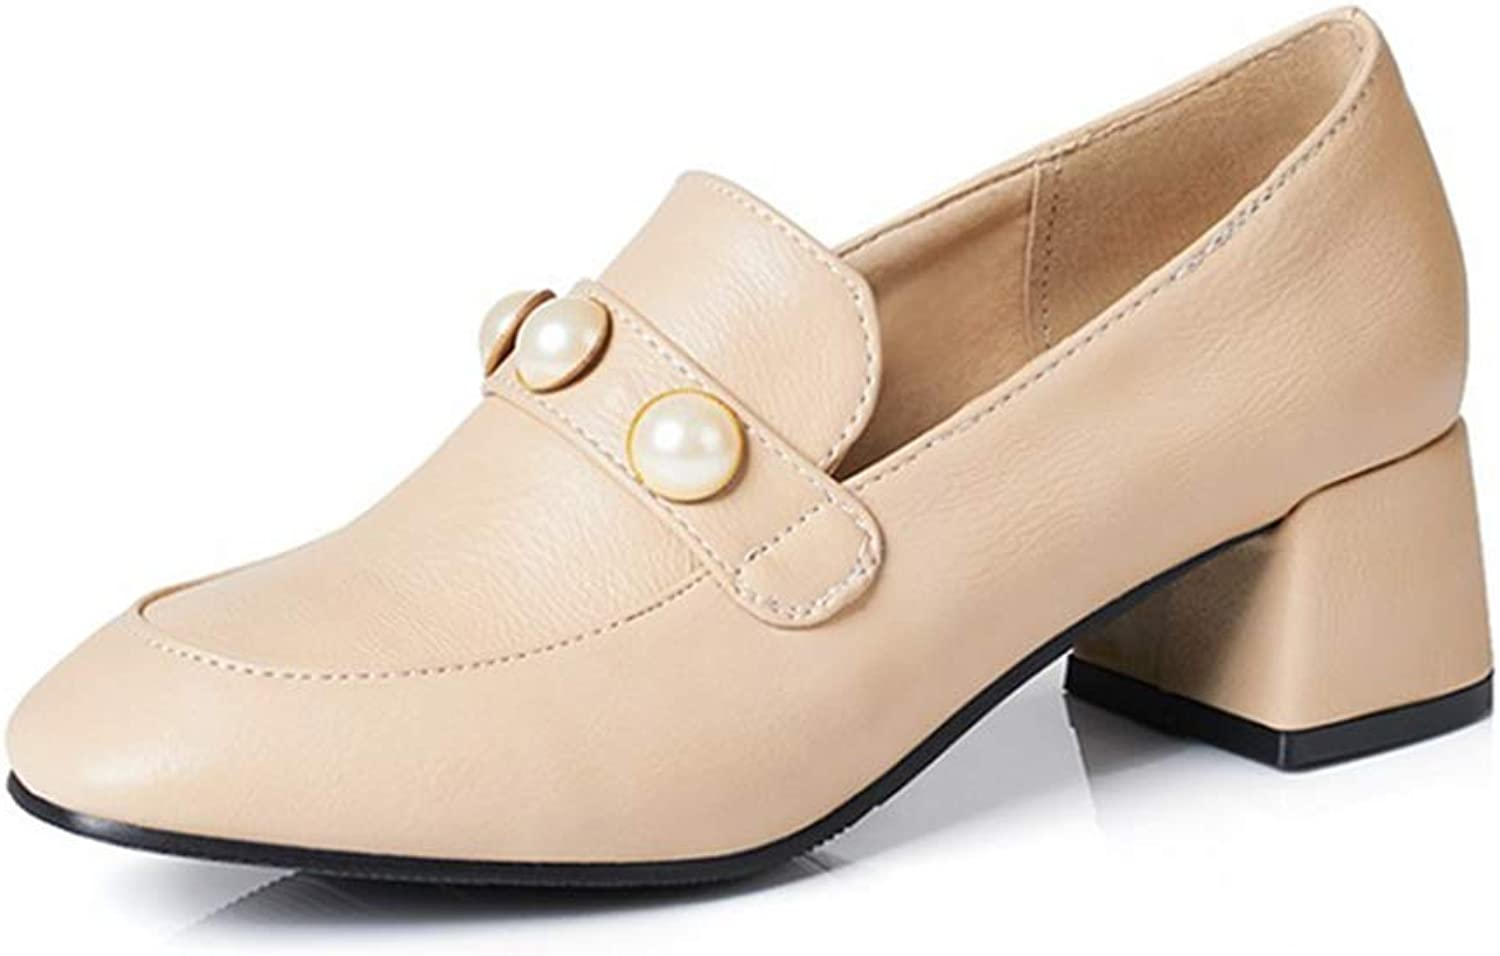 BMTH Women's Square Toe Penny Loafer shoes Pearl Leather Slip On Mid Heel Retro Dress Oxford Pumps